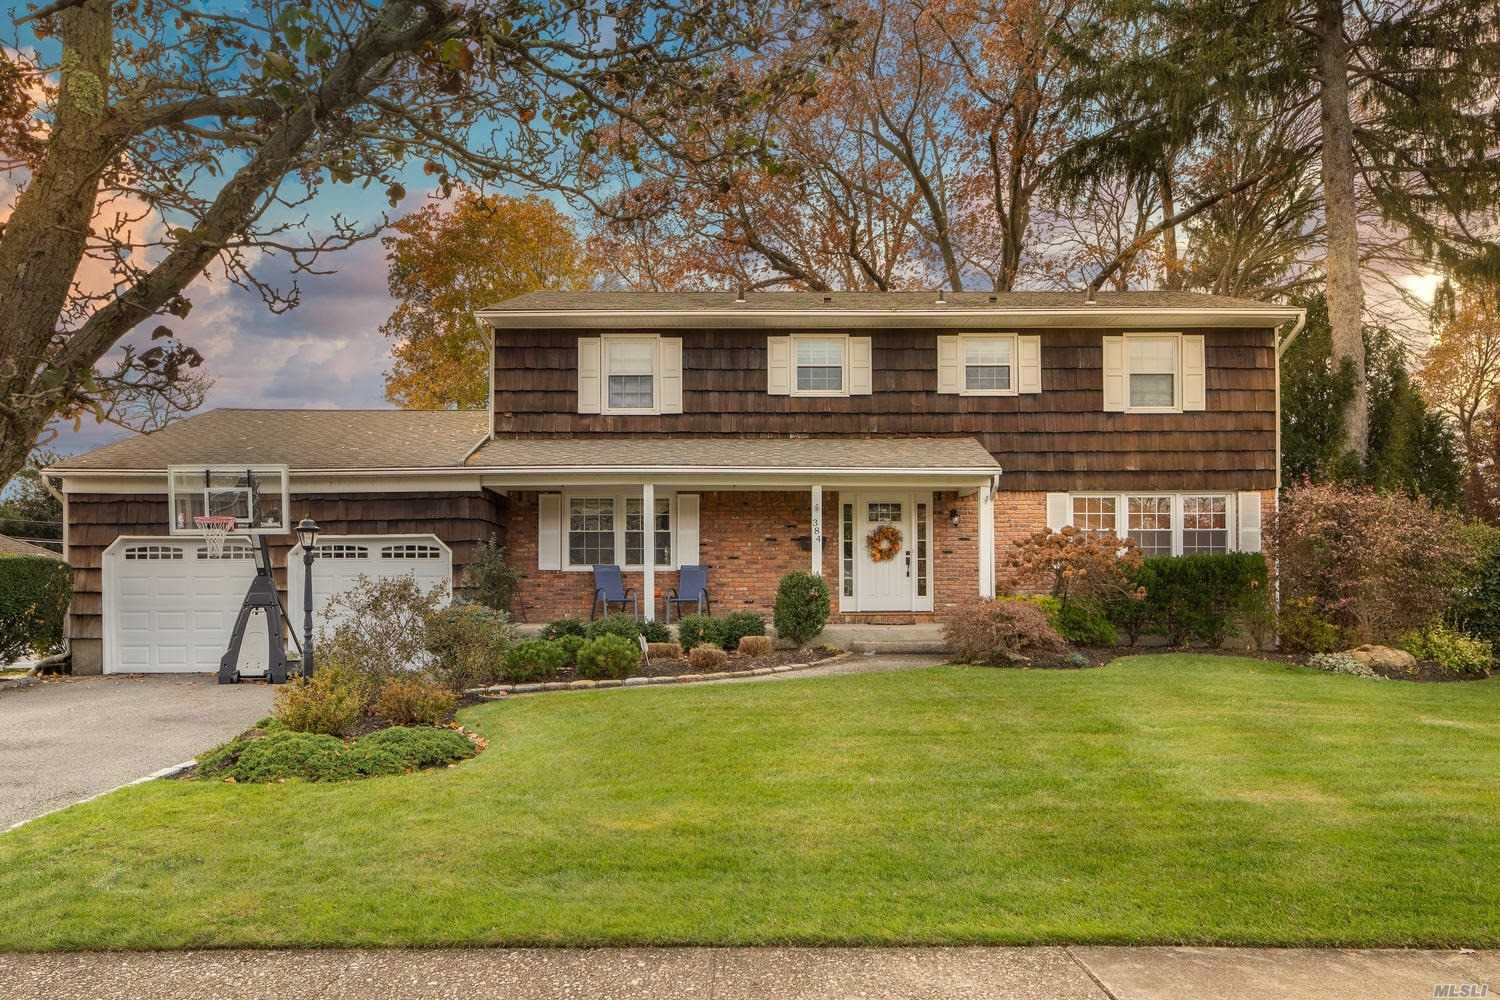 384 Ocean Avenue, Massapequa Park, New York